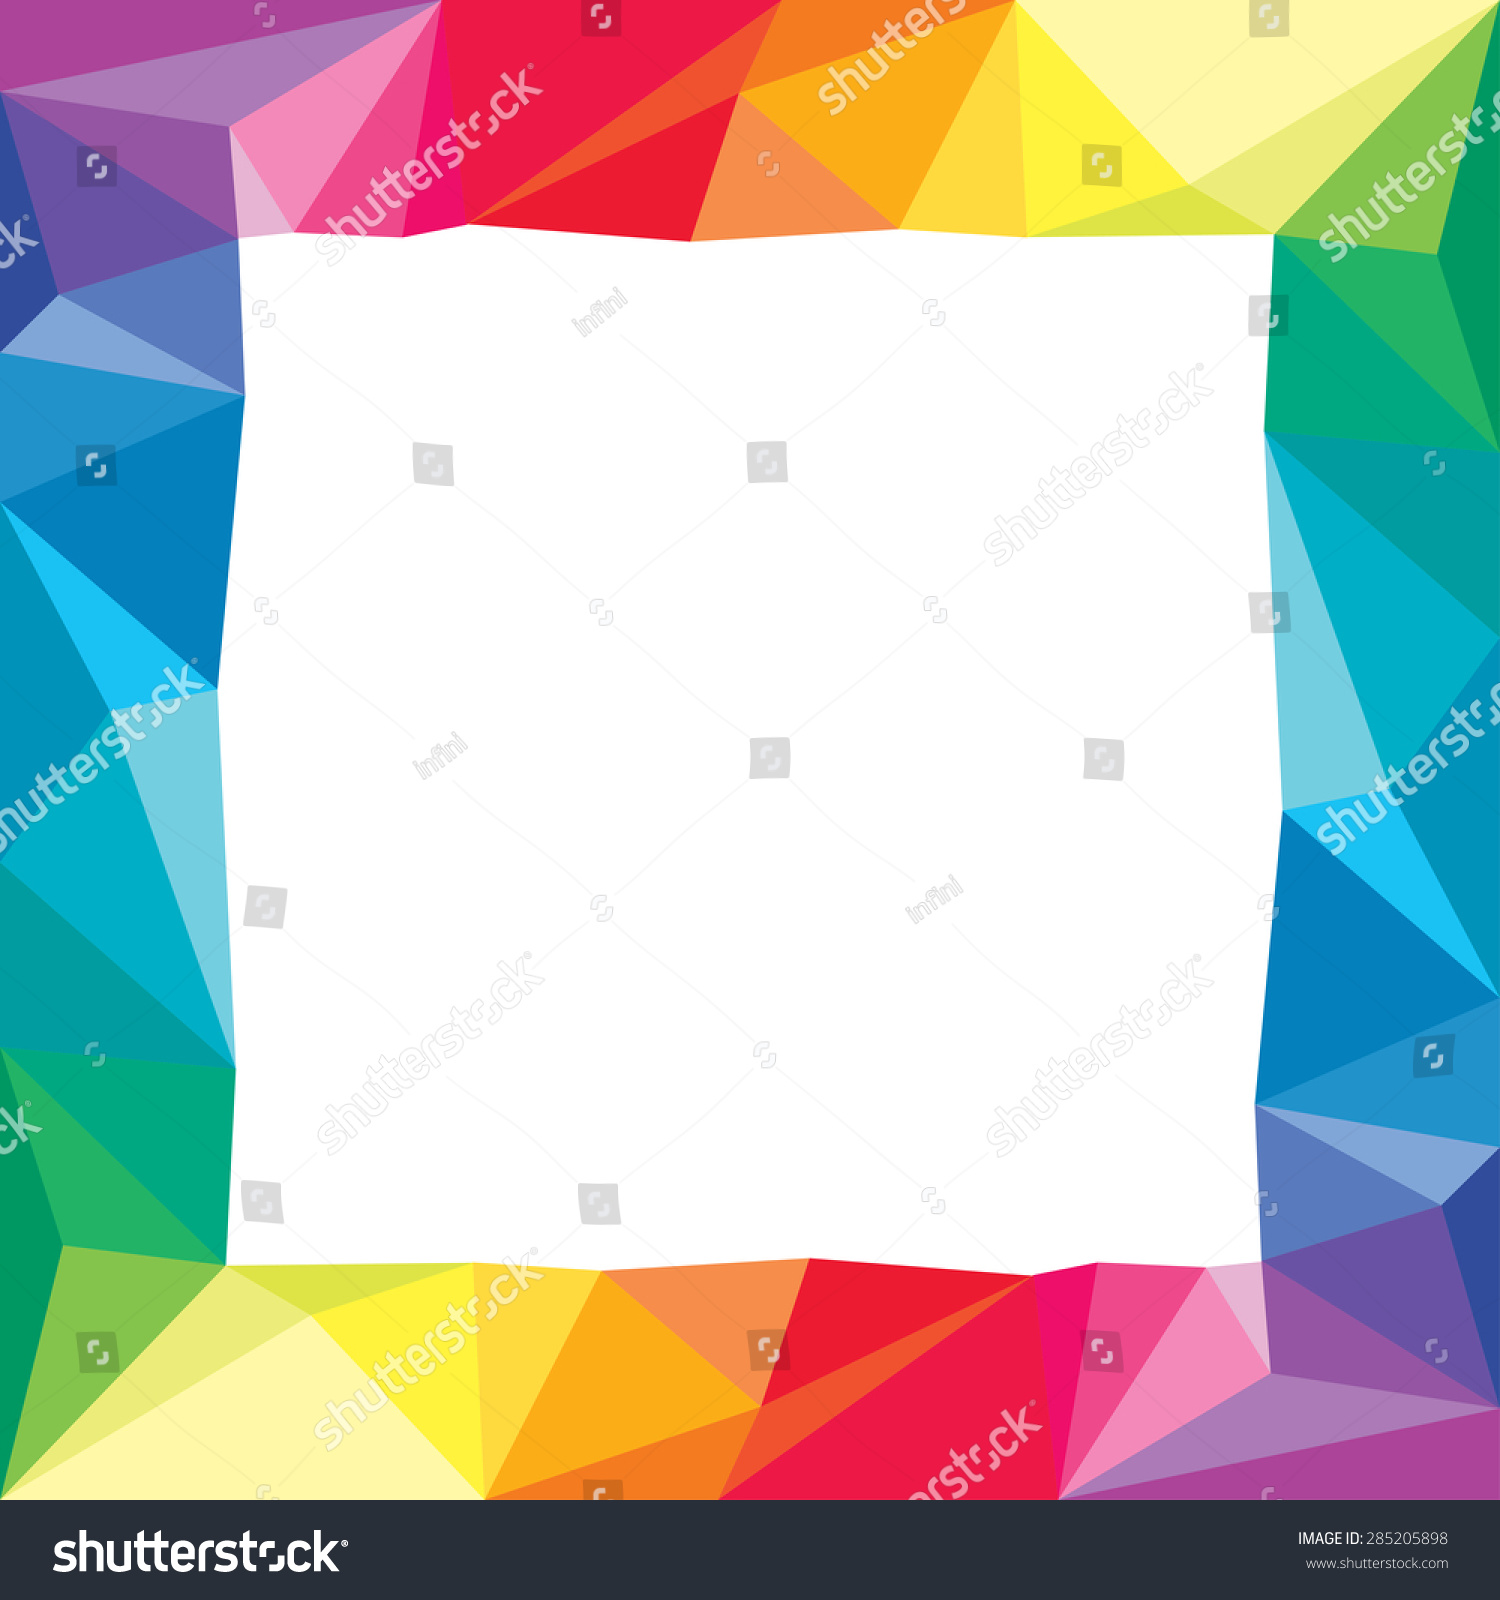 Abstract Geometric Origami Color Paper Frame Stock Vector (Royalty ...